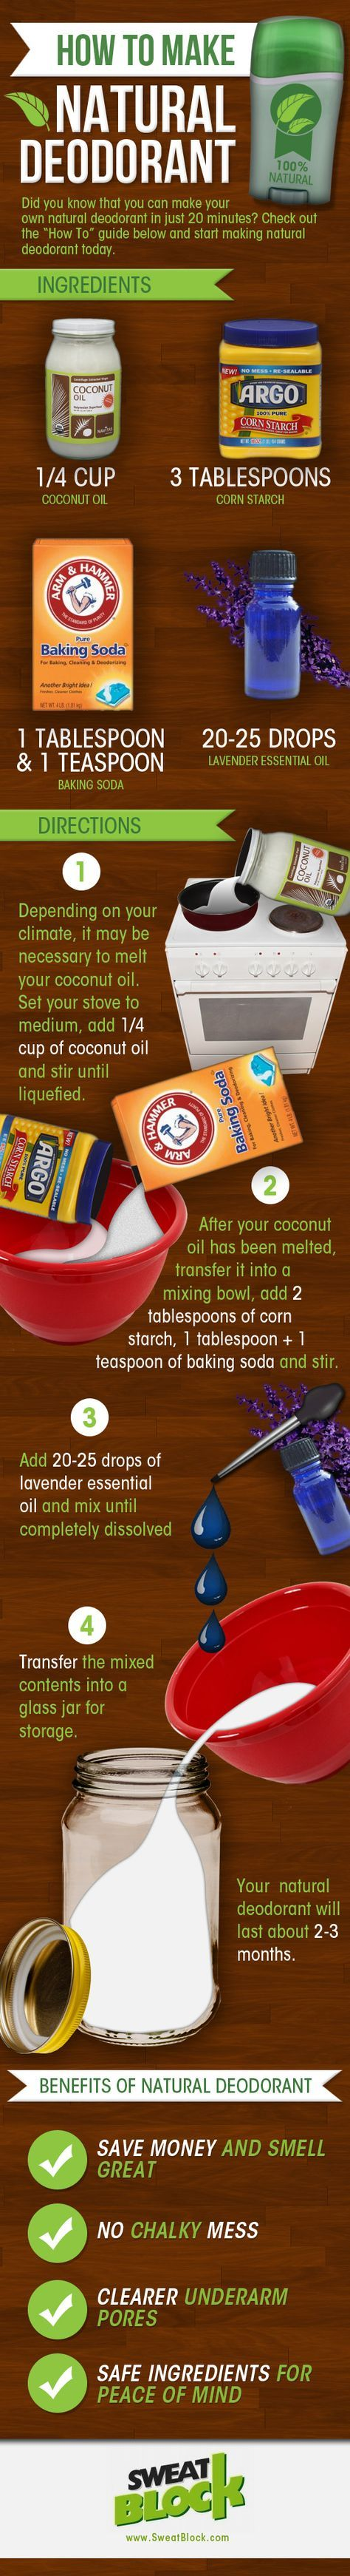 How To Make Natural Deodorant [infographic] Maybe one day I'll try this...